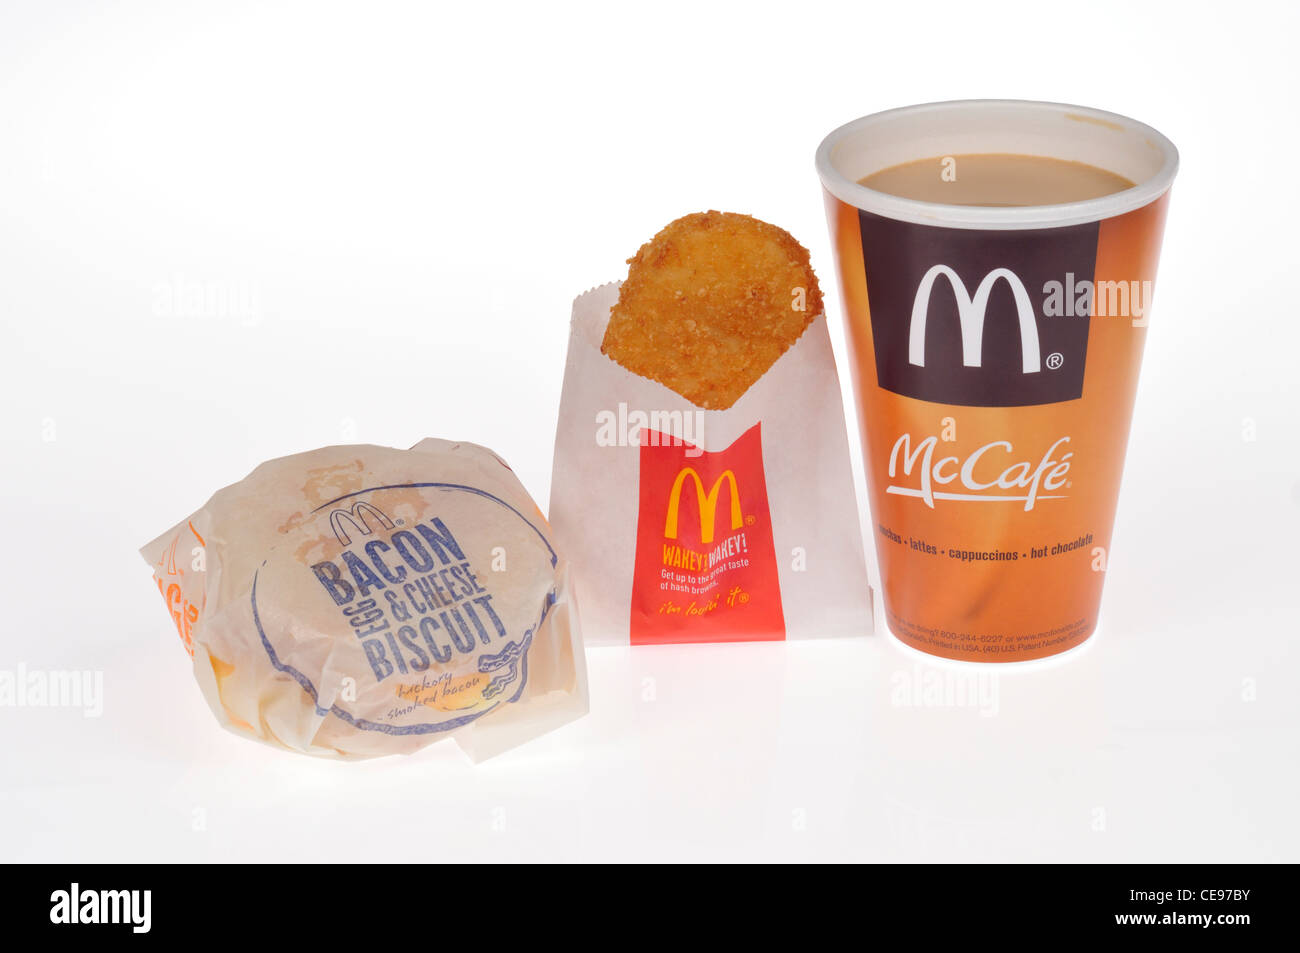 McDonalds breakfast of bacon egg and cheese biscuit, hash brown potato and McCafe hot coffee on white background - Stock Image